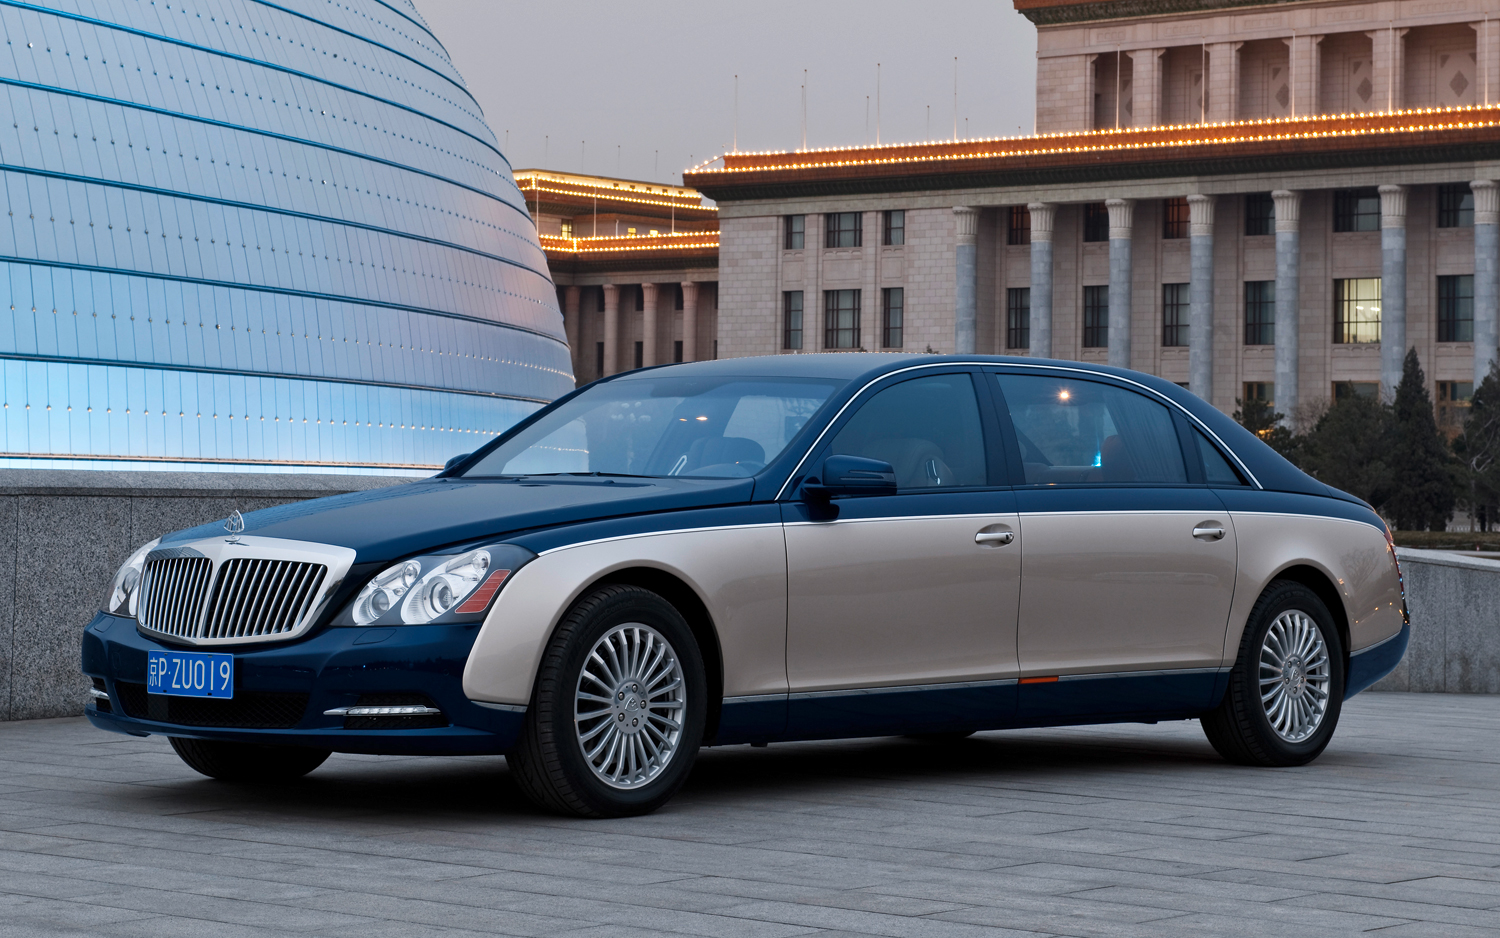 maybach lost some $400,000 on each car it sold, report says - motortrend